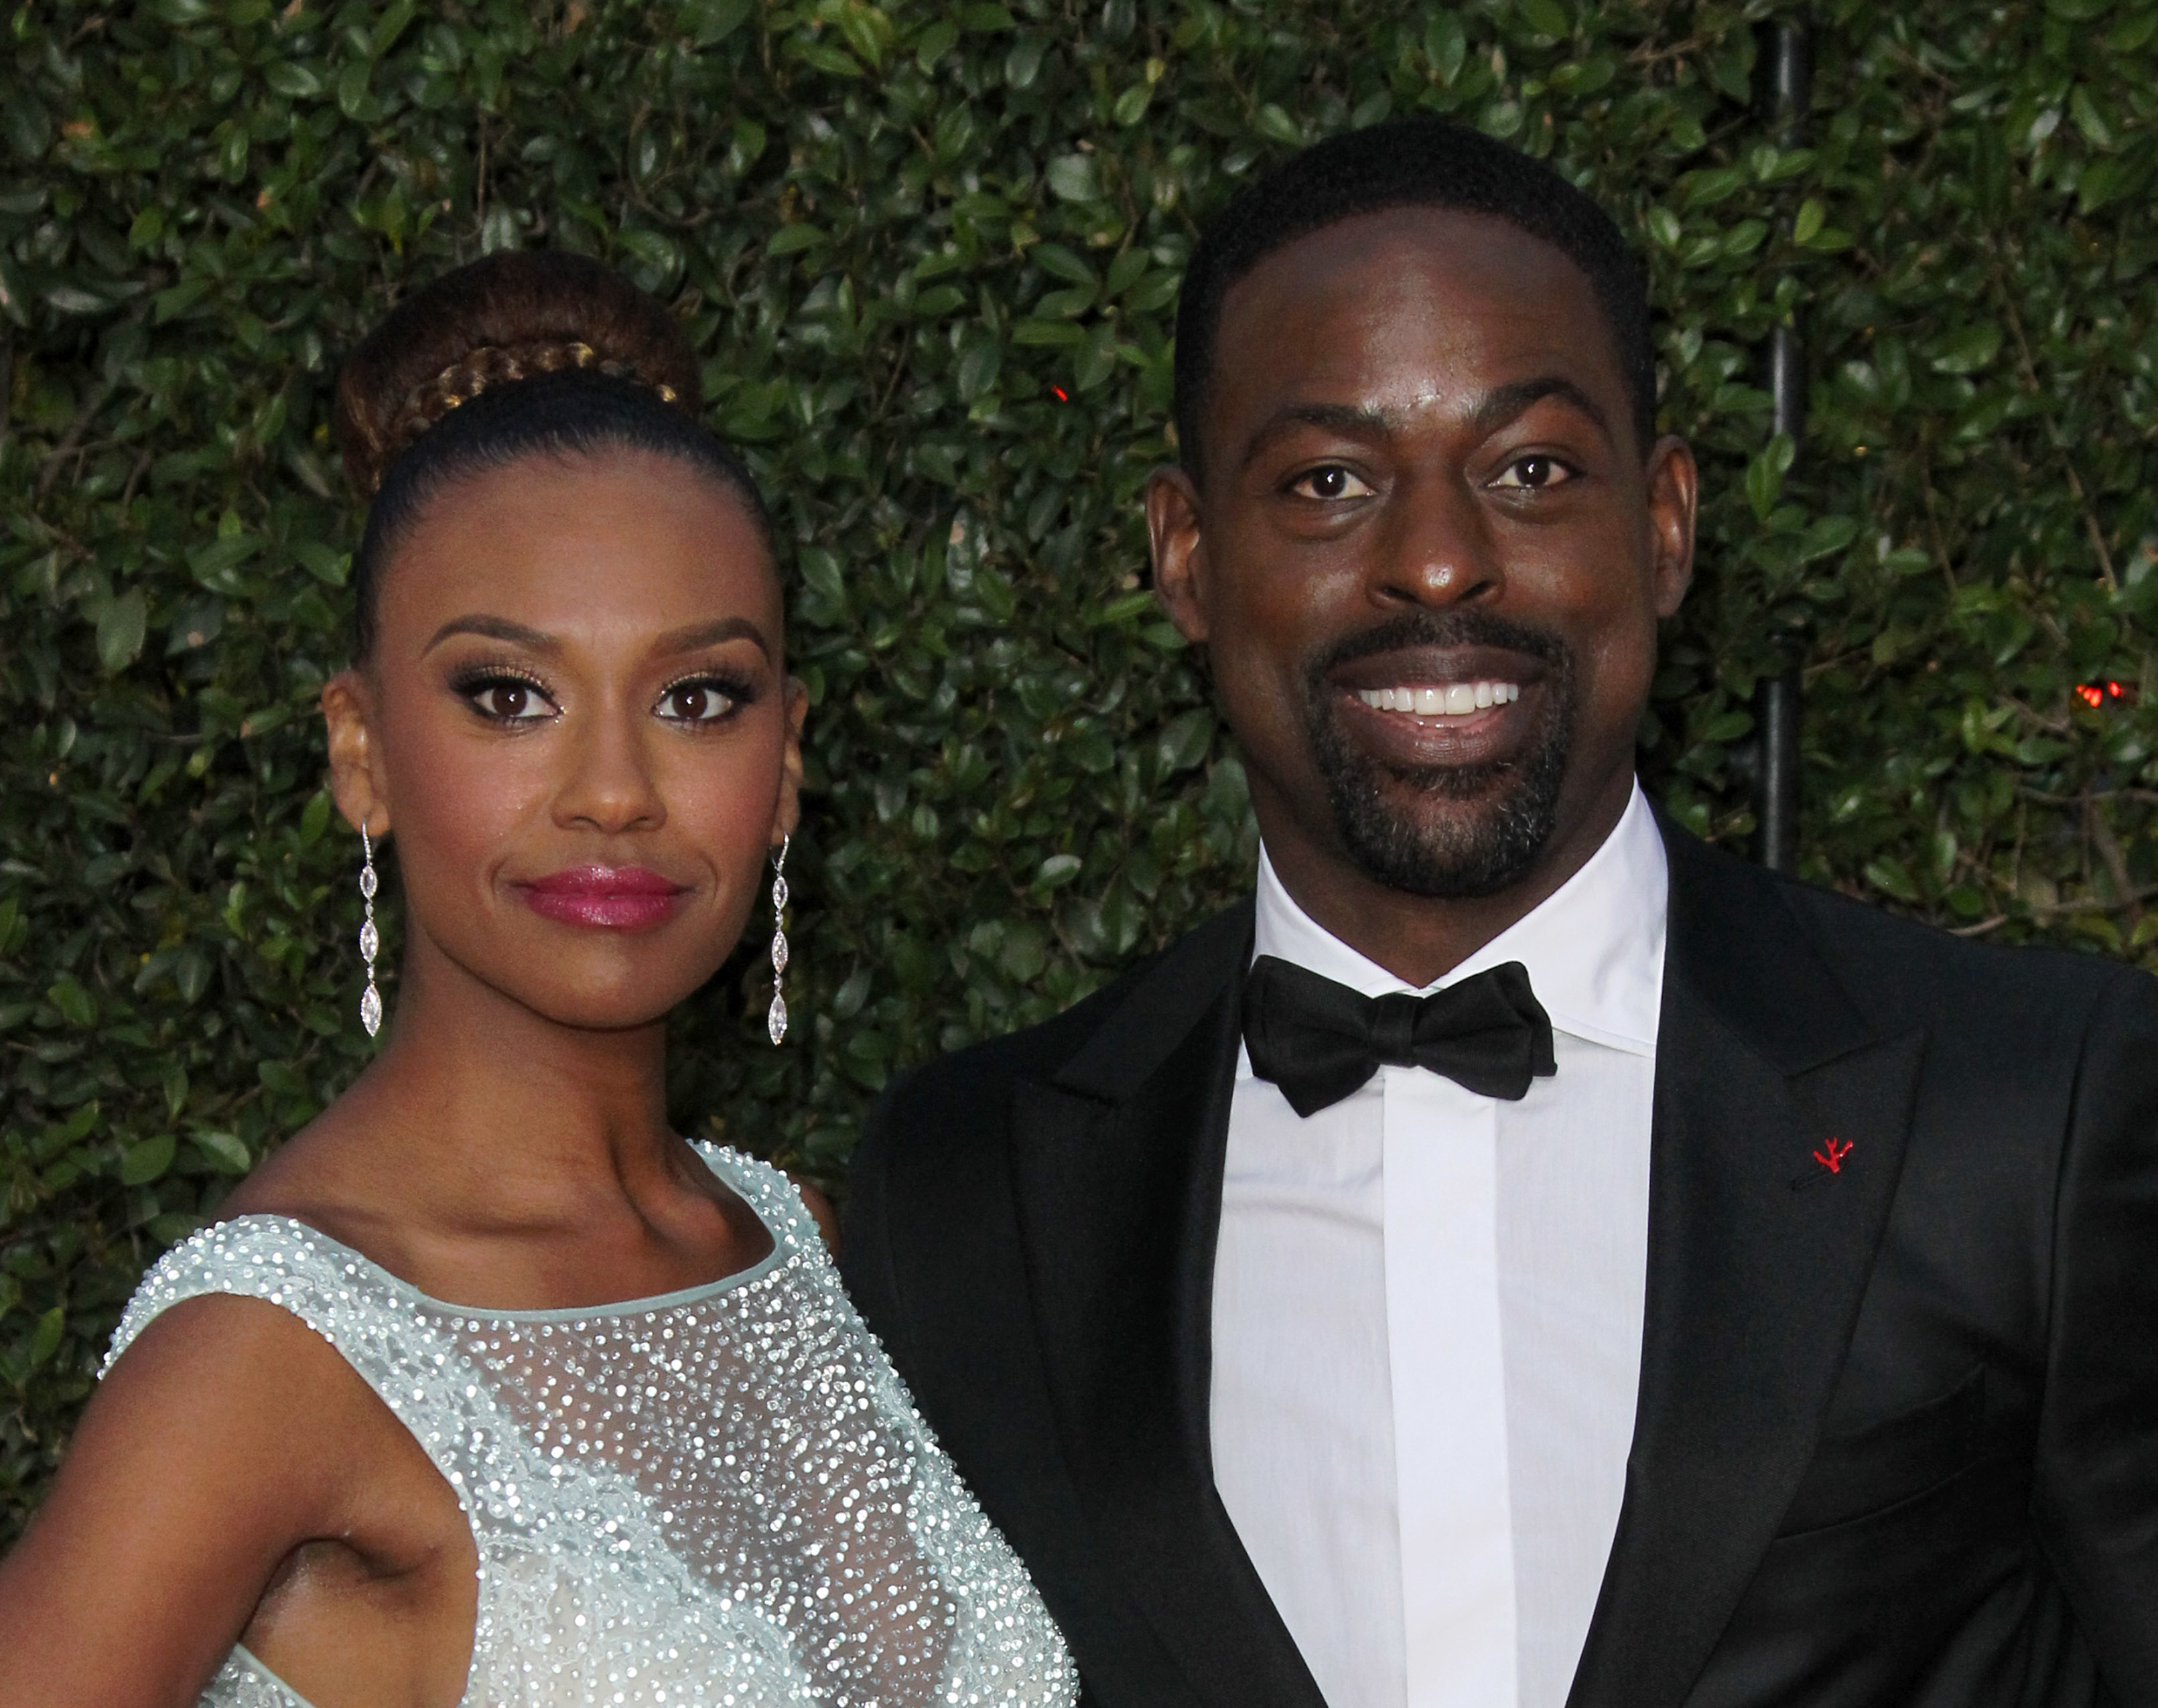 49th NAACP Image Awards 2018 Arrivals held at the Pasadena Civic Auditorium in Pasadena, California.Featuring: Sterling K. Brown, Ryan Michelle BatheWhere: Pasadena, California, United StatesWhen: 15 Jan 2018Credit: Adriana M. Barraza/WENN.com